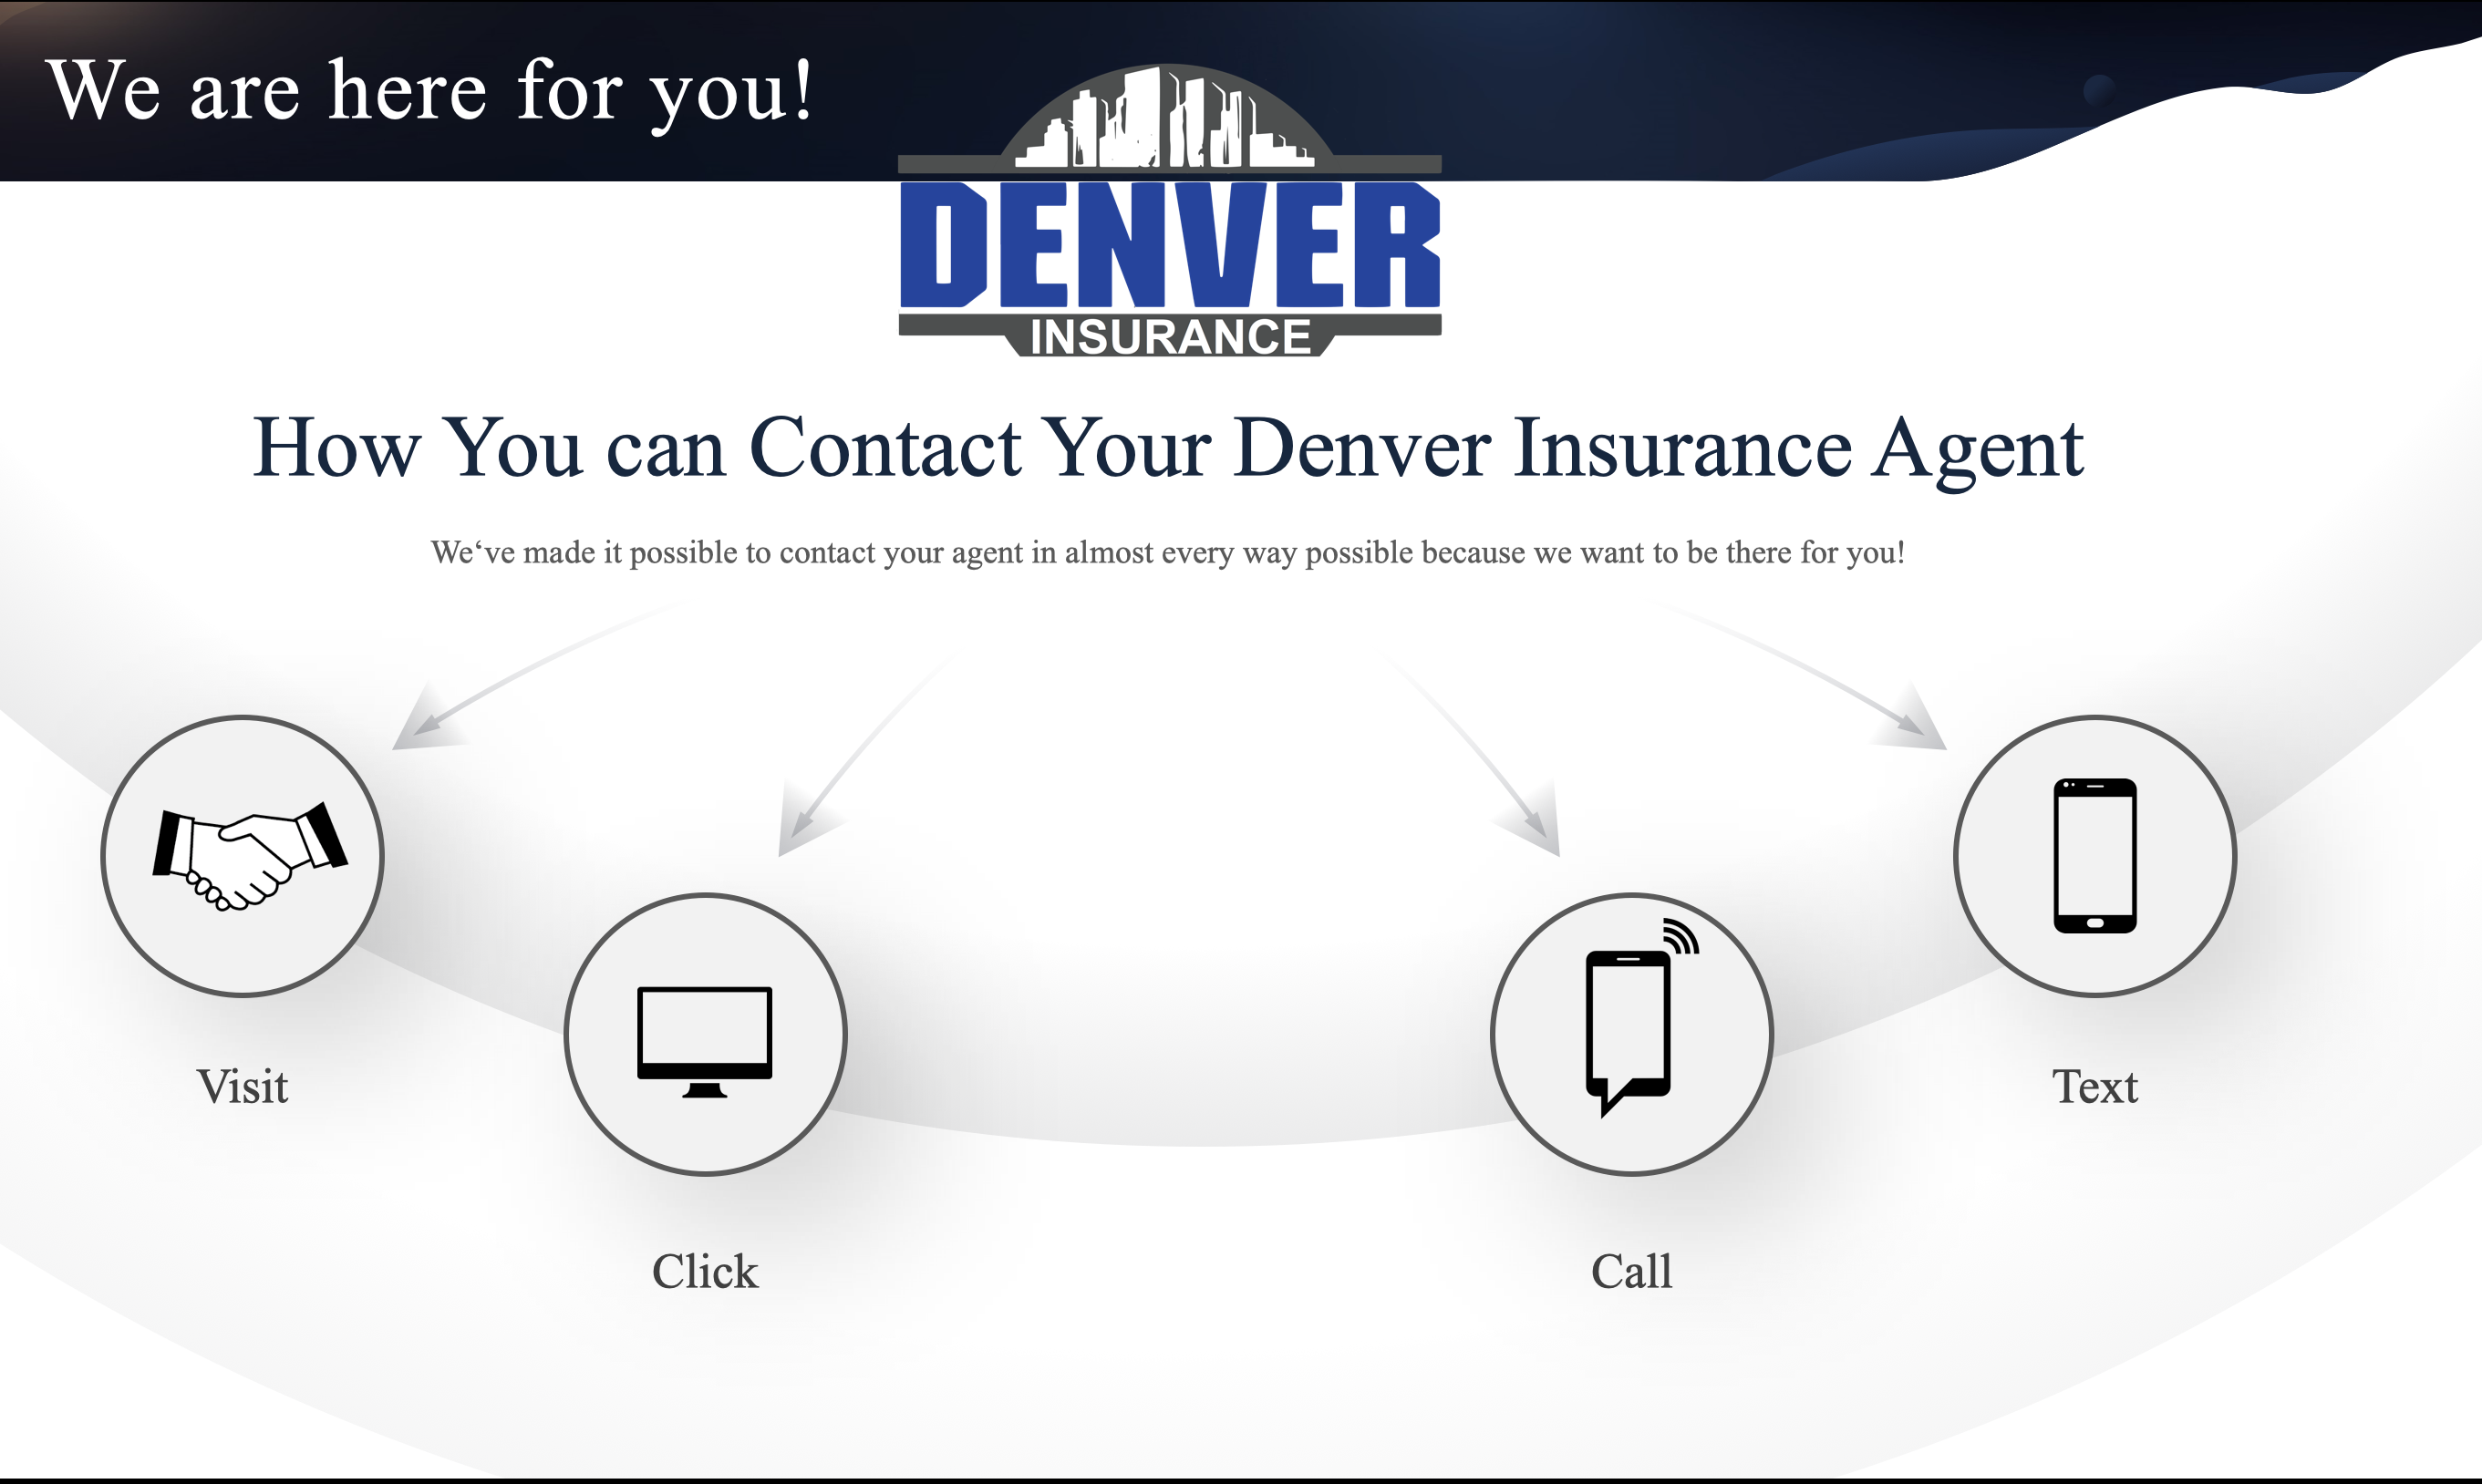 You can contact your Denver Insurance Agent 4 ways